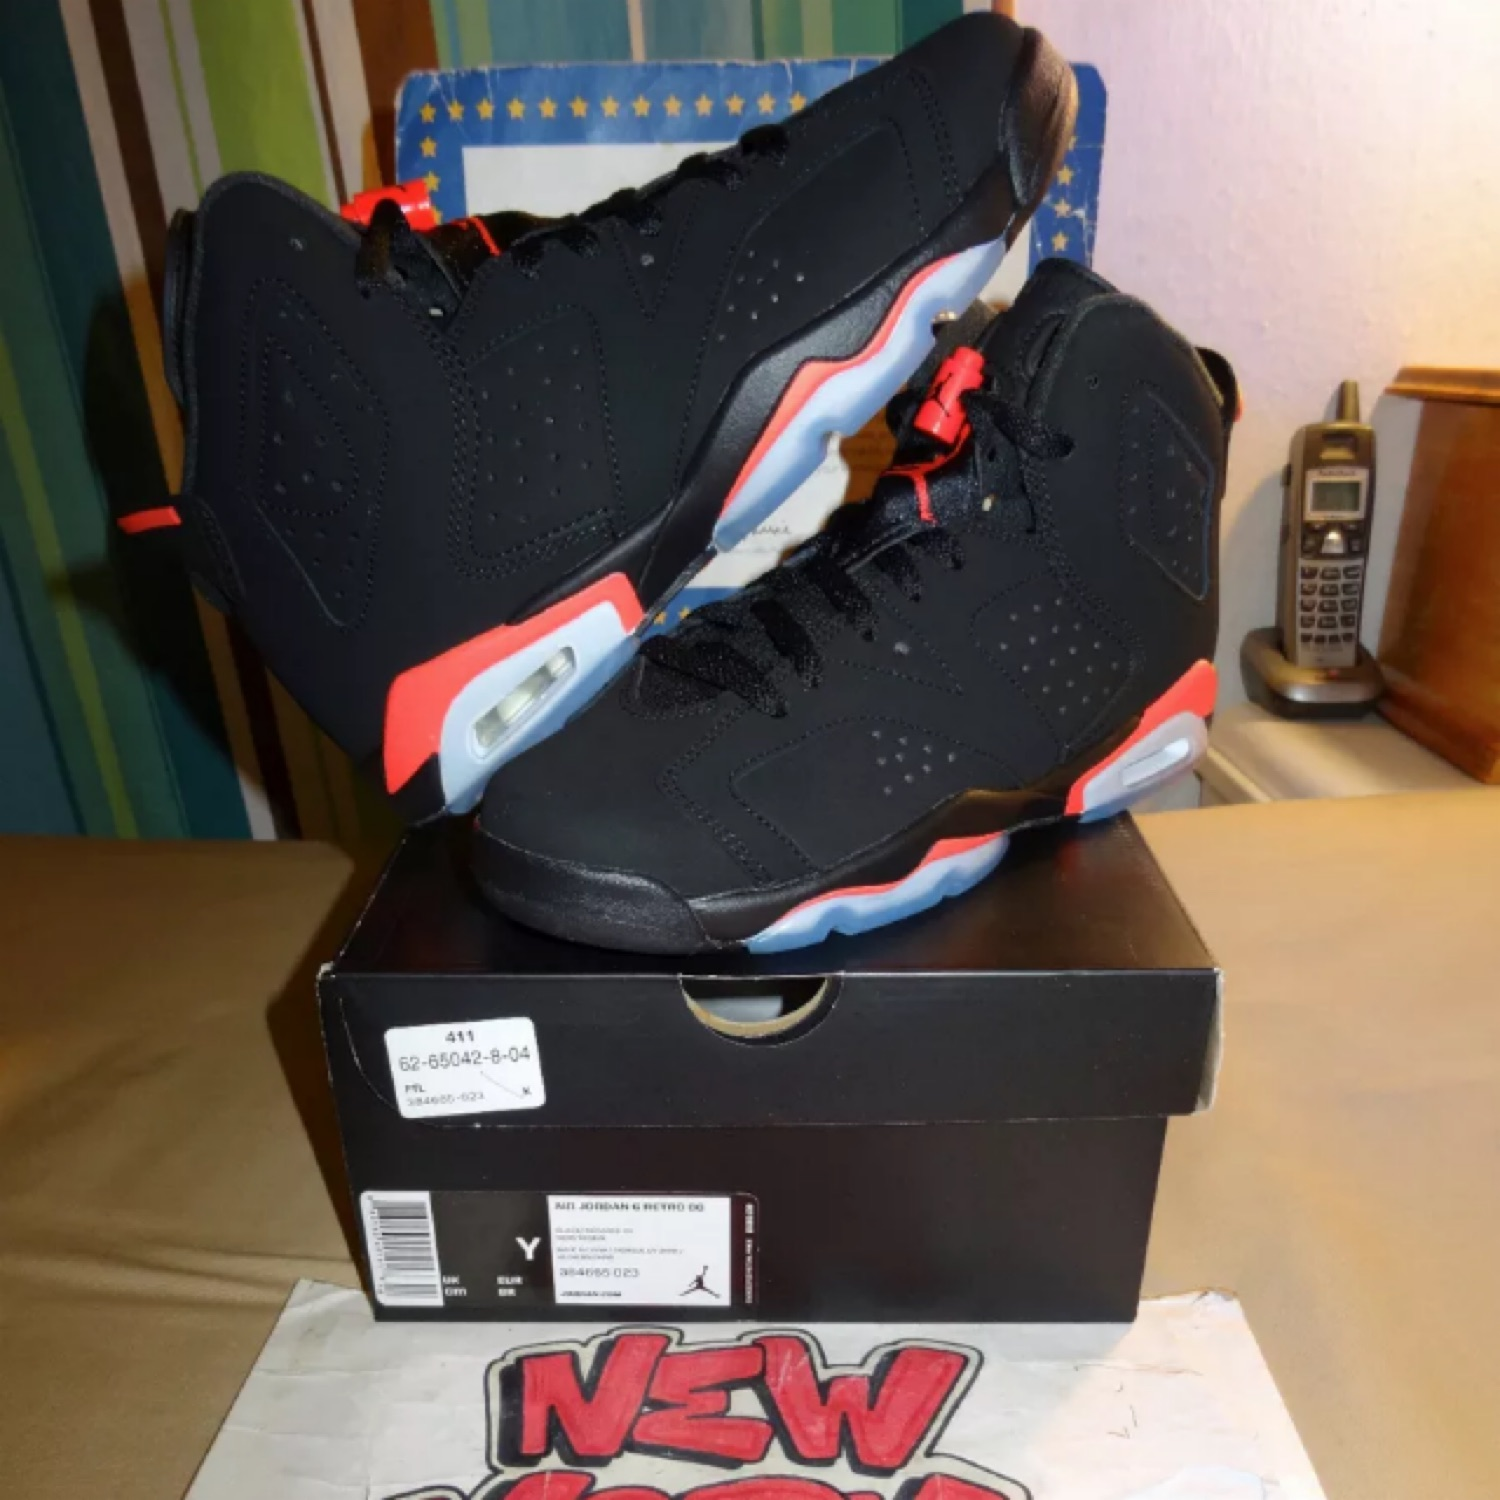 Nike Air Jordan 6 Black Infrared Bg